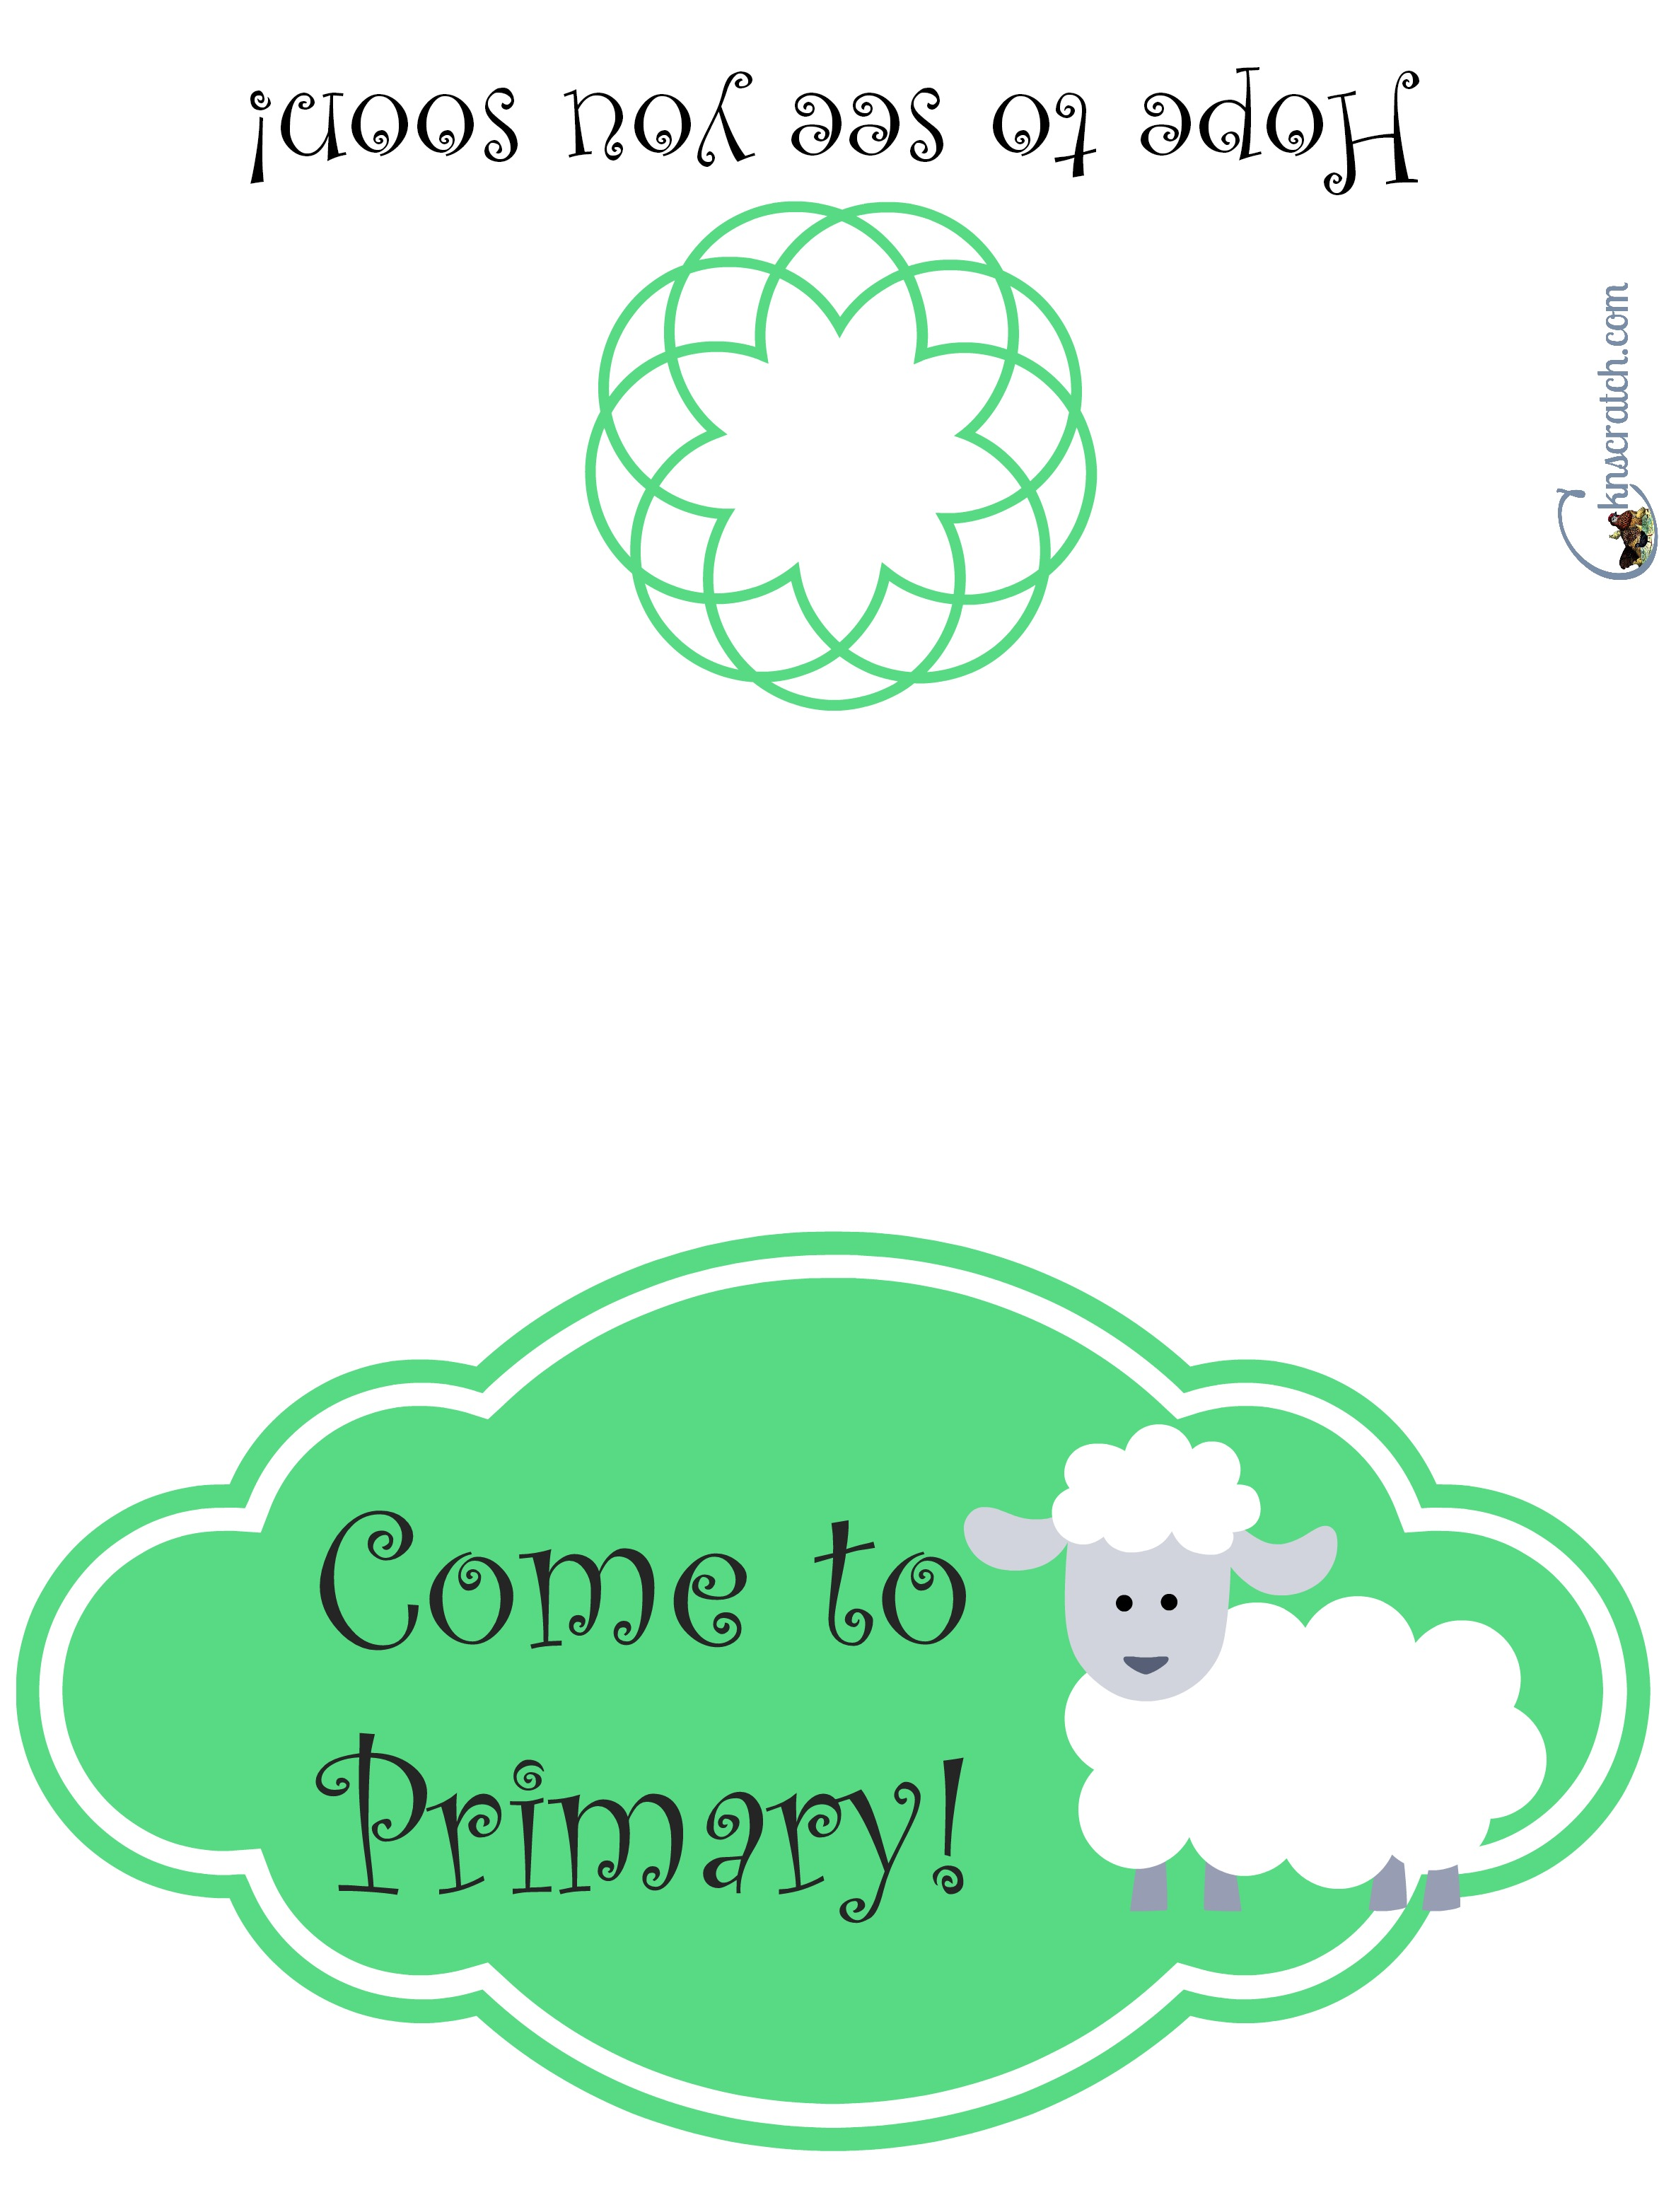 Invite someone to LDS primary with this cute card- get the whole class to sign it